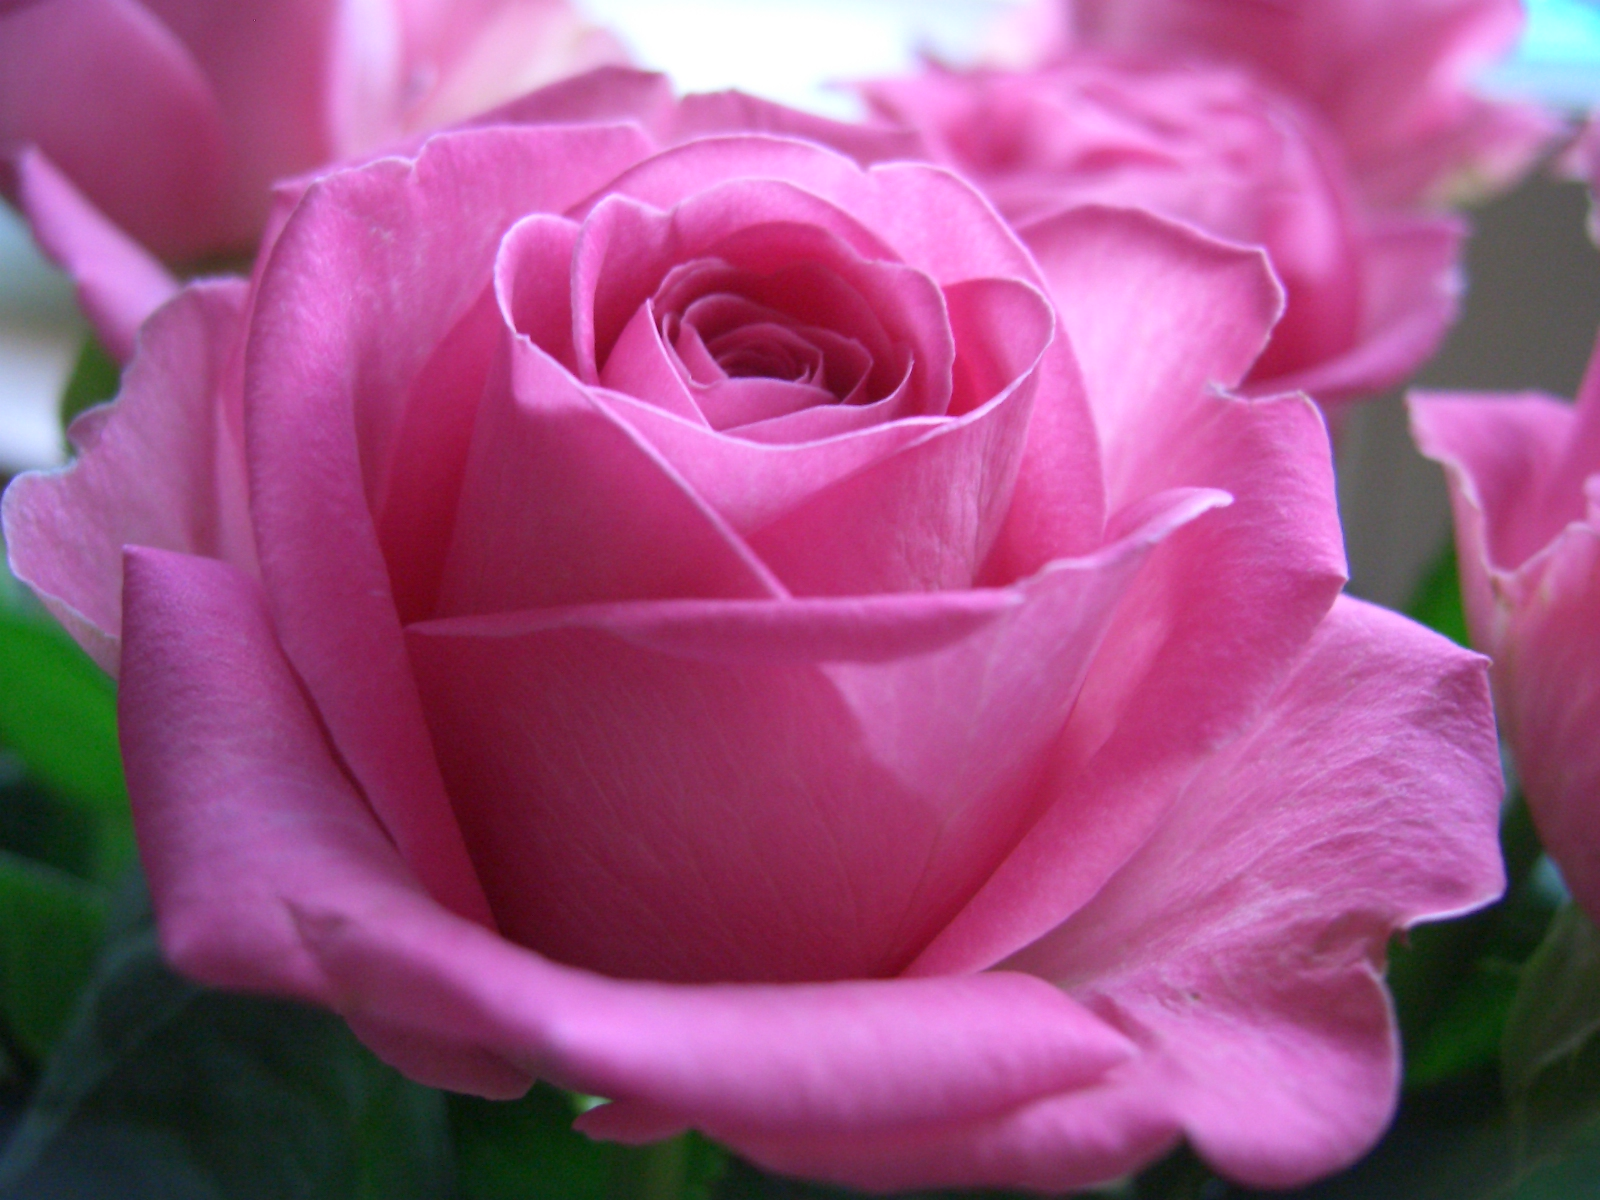 РОЗА РОЗОВАЯ  Pink_Rose_,free+hd+wallpapers+pink+rose+wallpapers